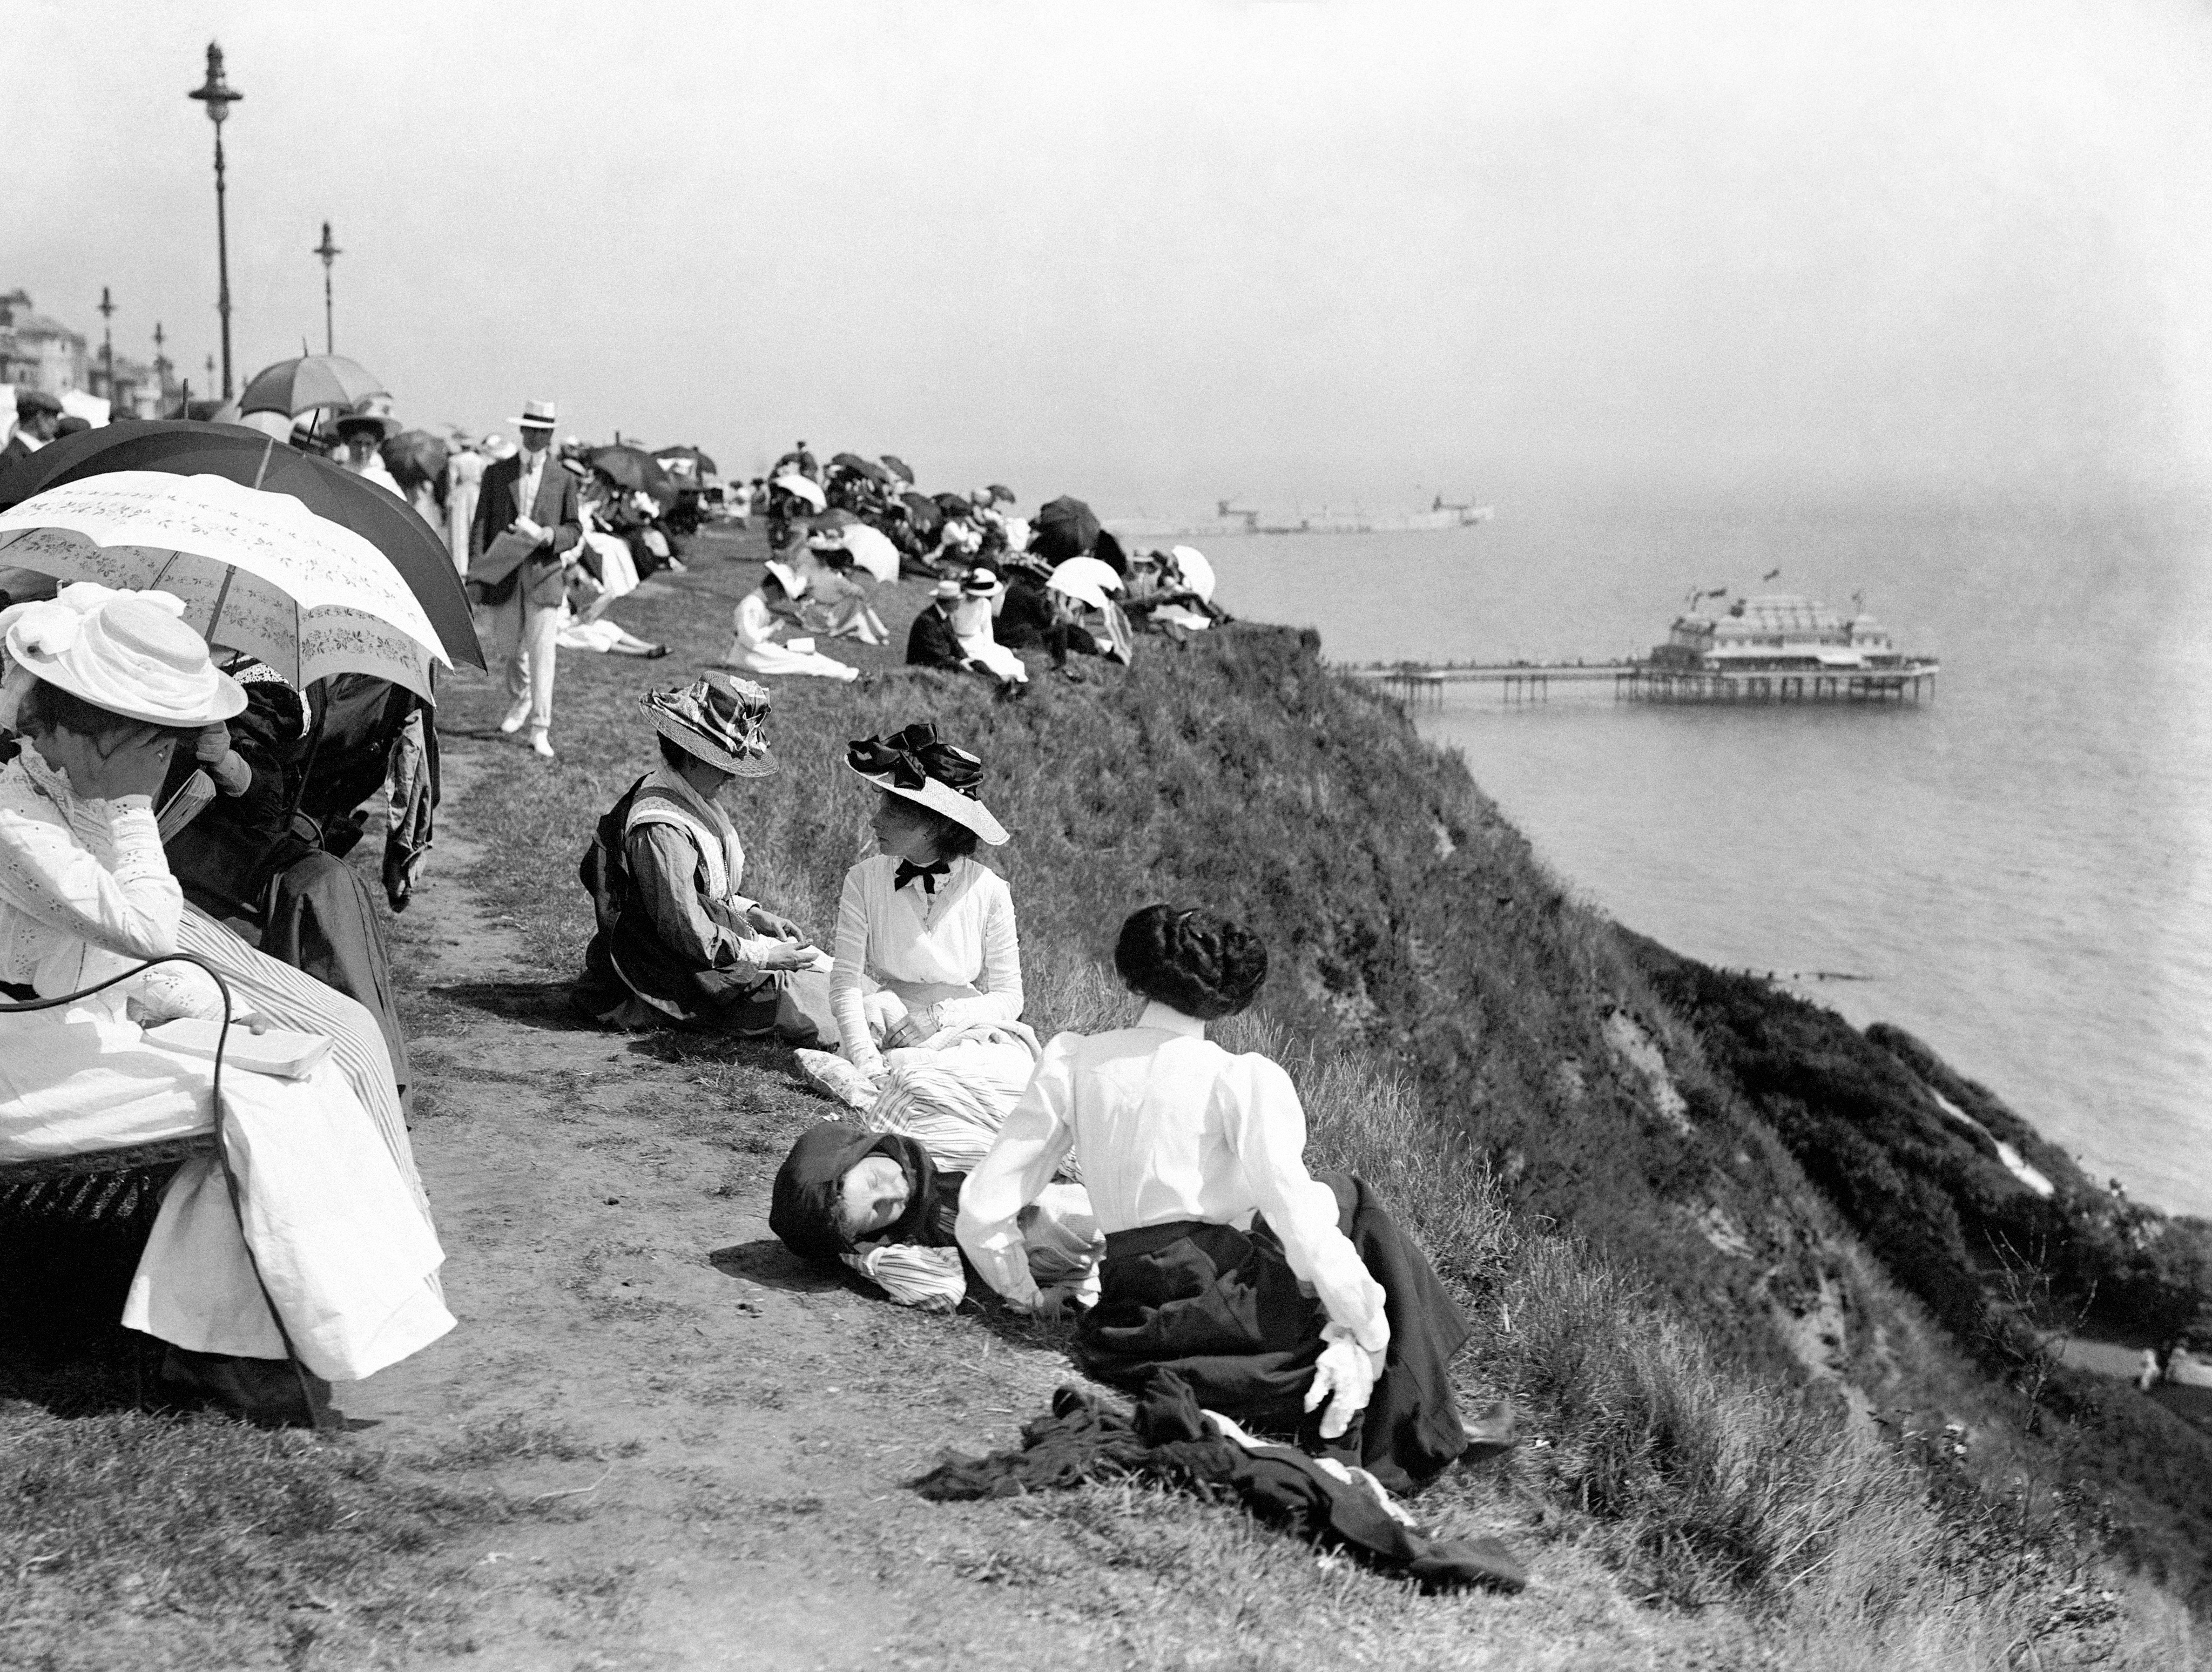 Edwardian sunbathers on the cliffs at Folkestone